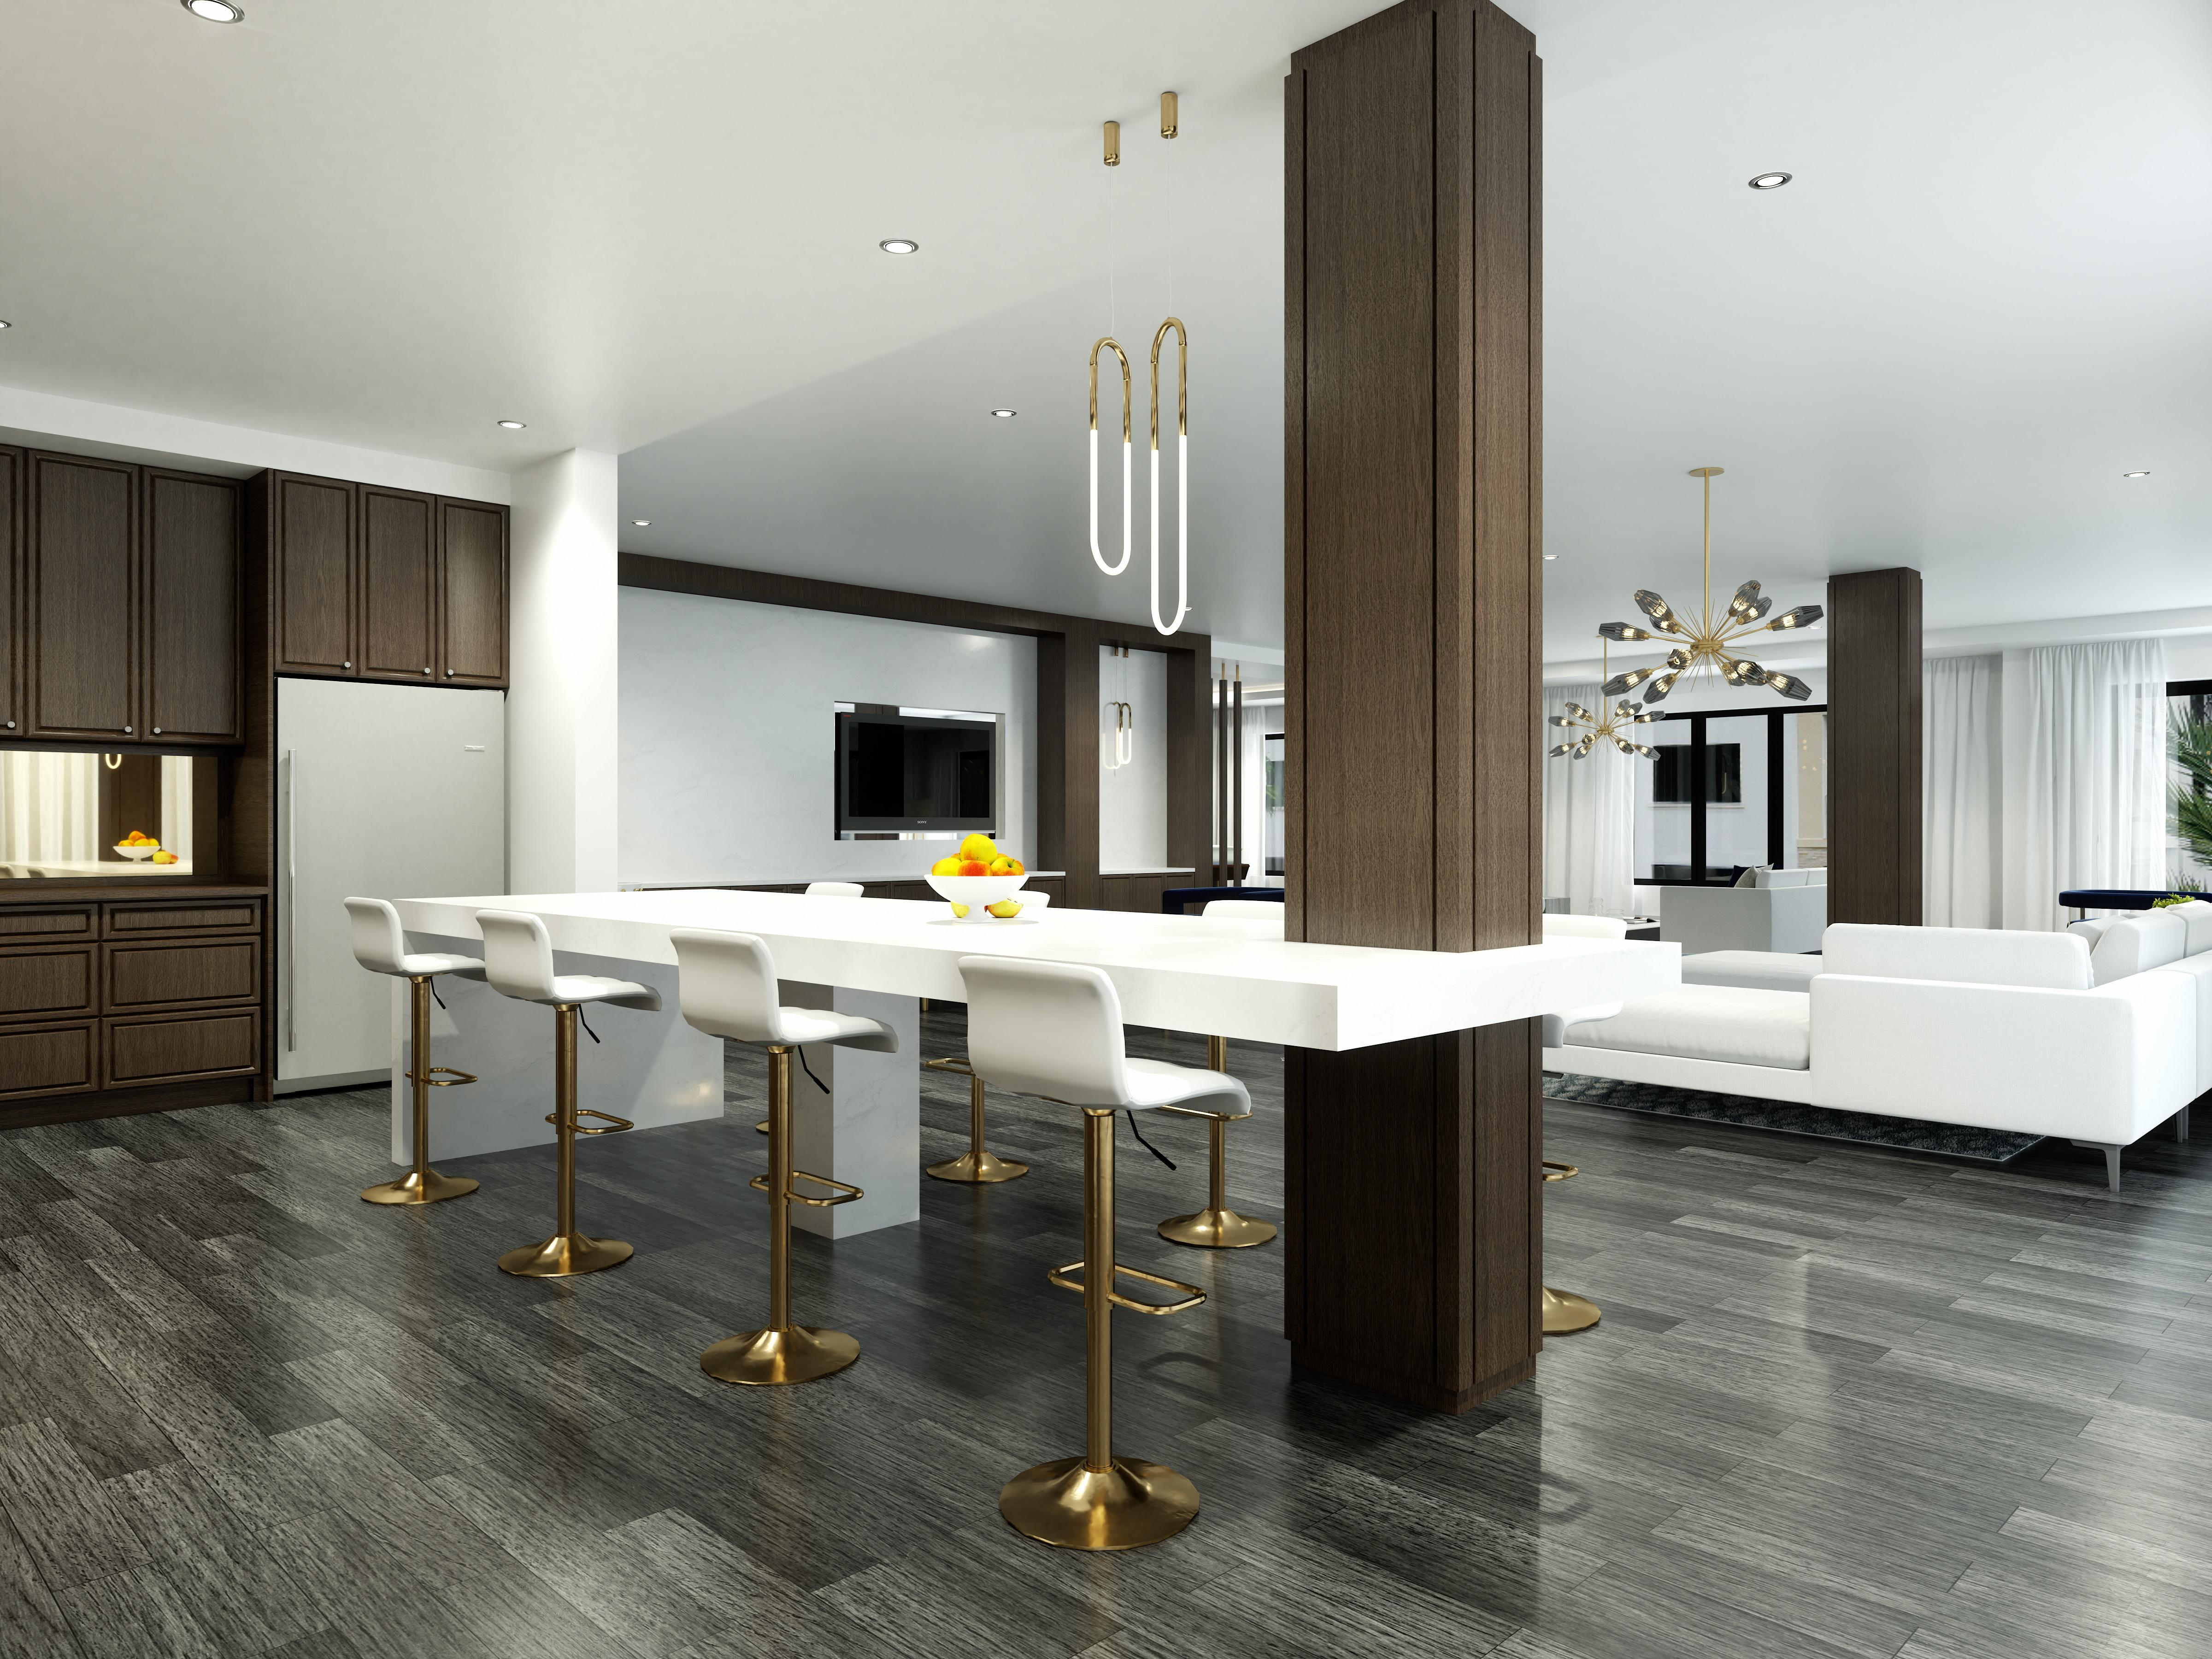 Kitchen featured in the Dolce By The Ronto Group in Naples, FL